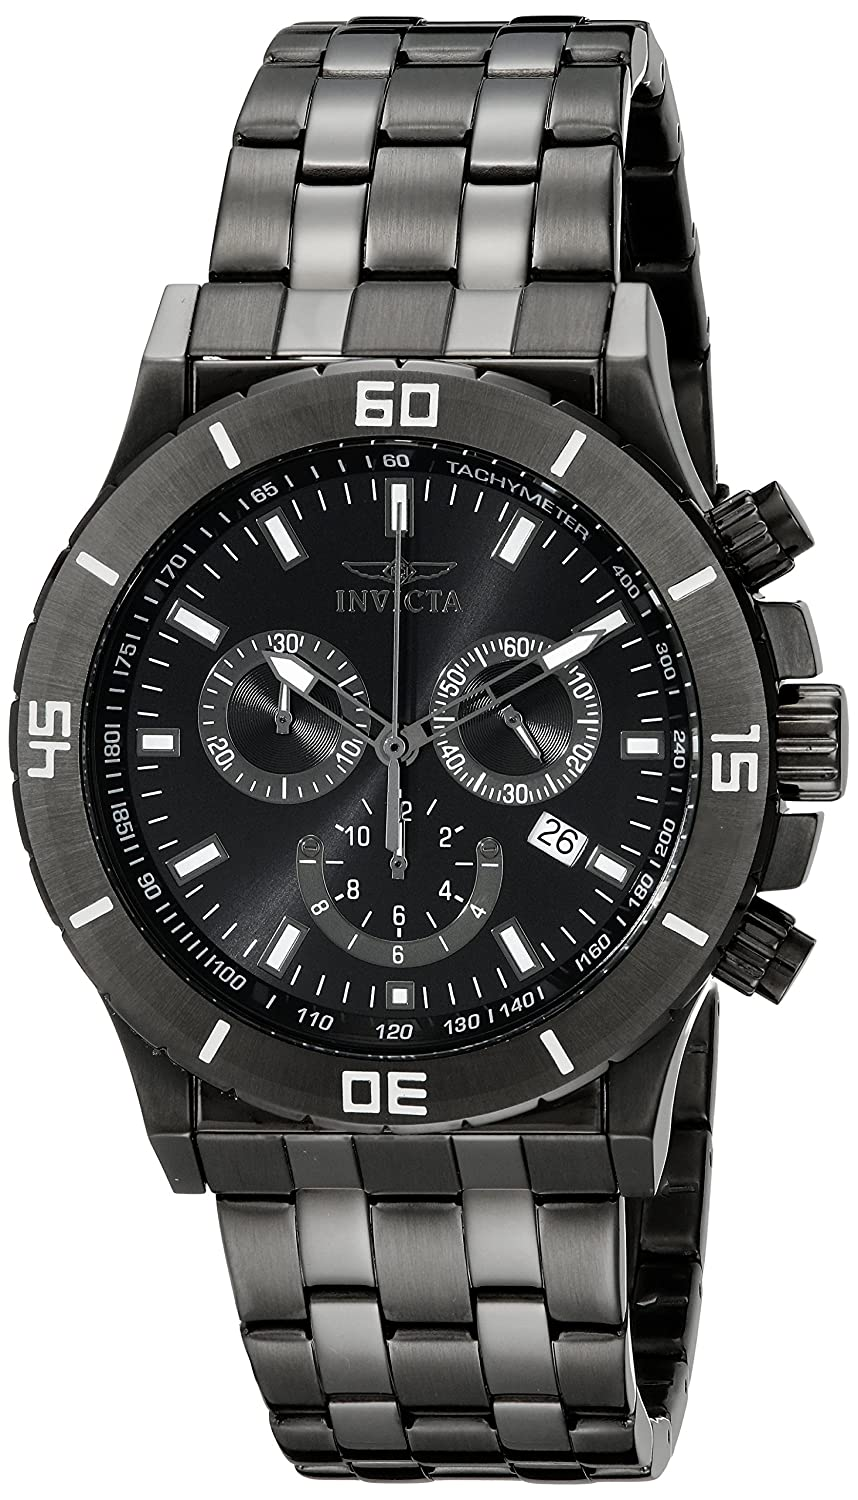 Amazon.com: Invicta Mens 0393 II Collection Chronograph Black-Ion Plated Stainless Steel Watch: Invicta: Watches